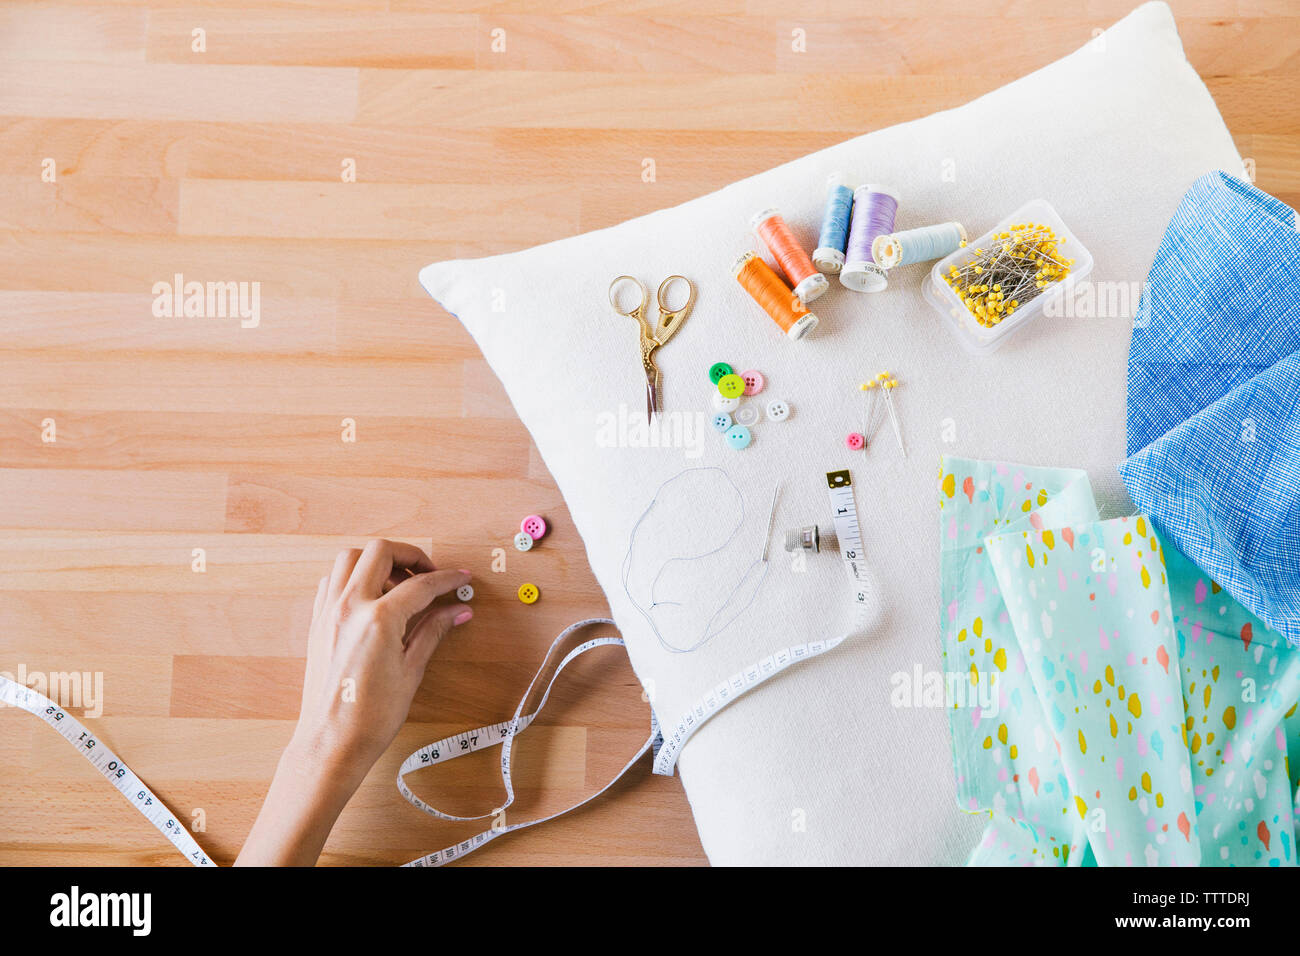 Overhead view of woman touching button by sewing item on pillow at table - Stock Image